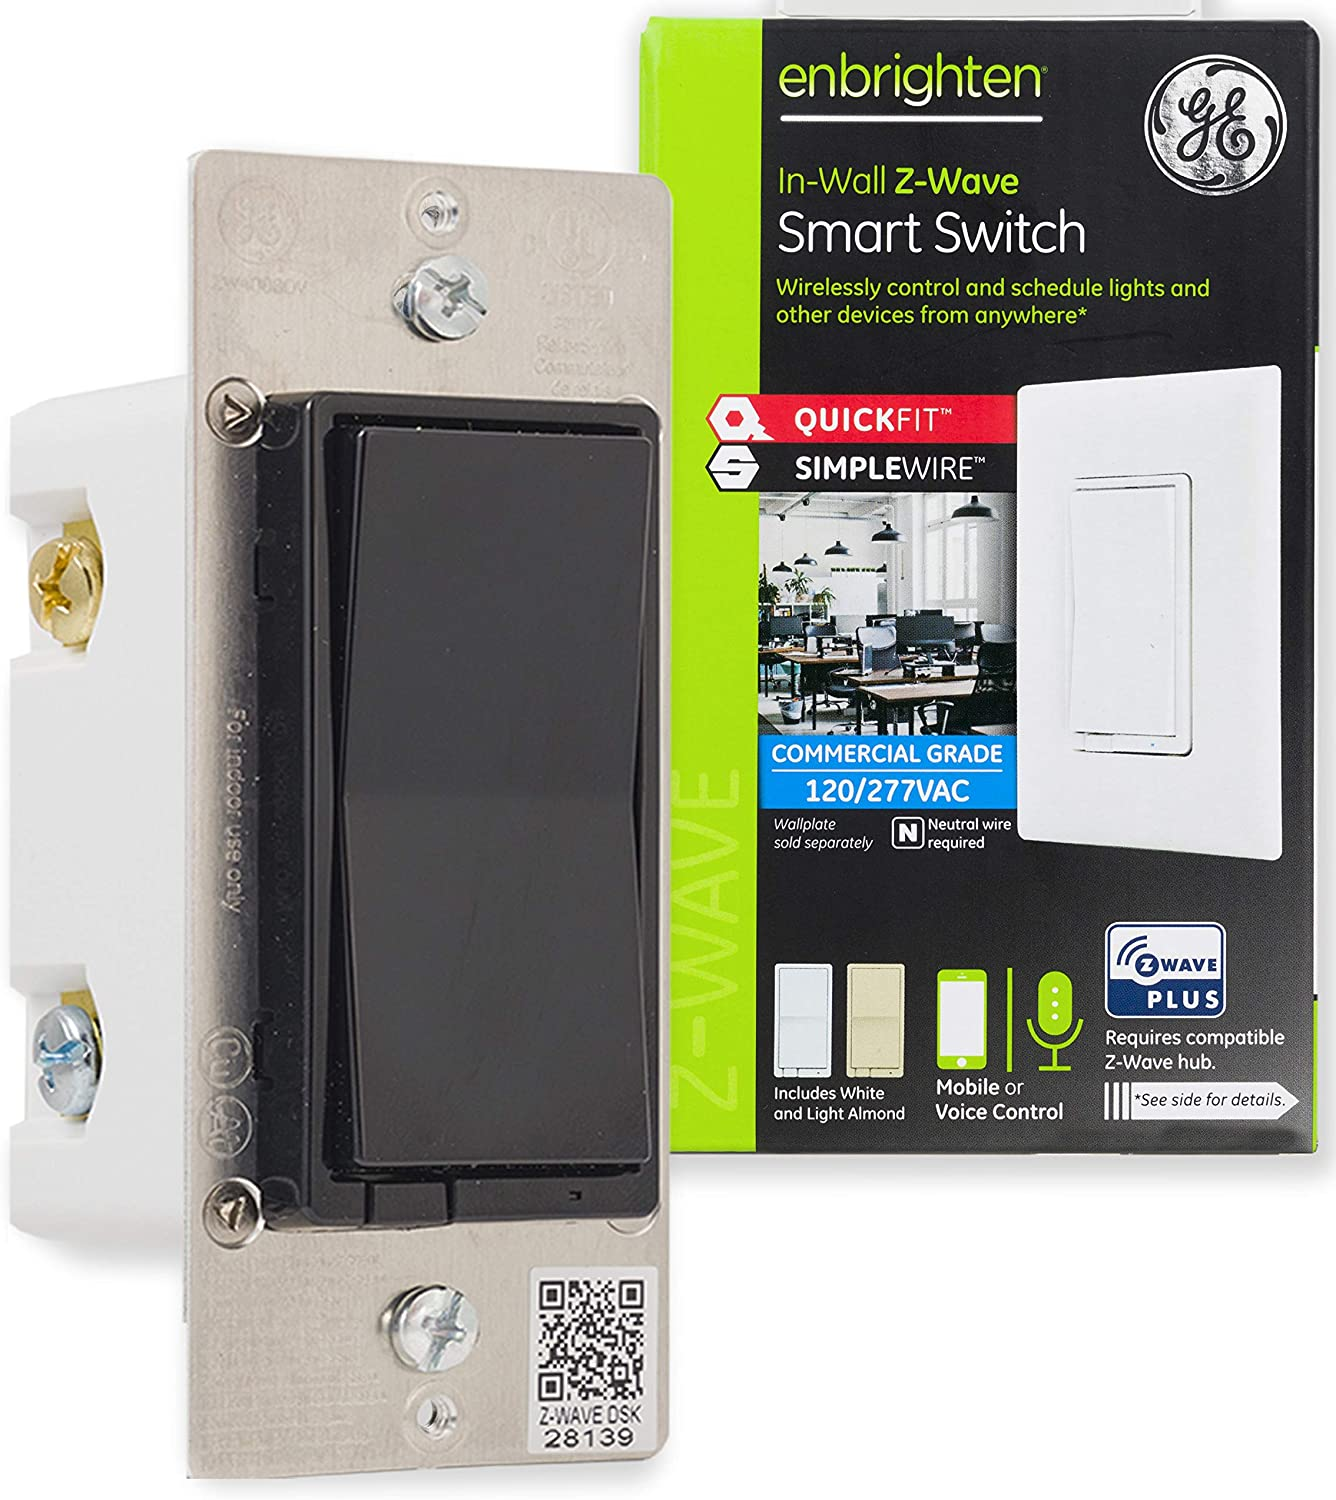 GE Enbrighten Z-Wave Plus Smart Light Switch, QuickFit & SimpleWire, Commercial 120/277VAC, Works with Alexa, Google Assistant, ZWave Hub & Neutral Wire Required, Black, 49184